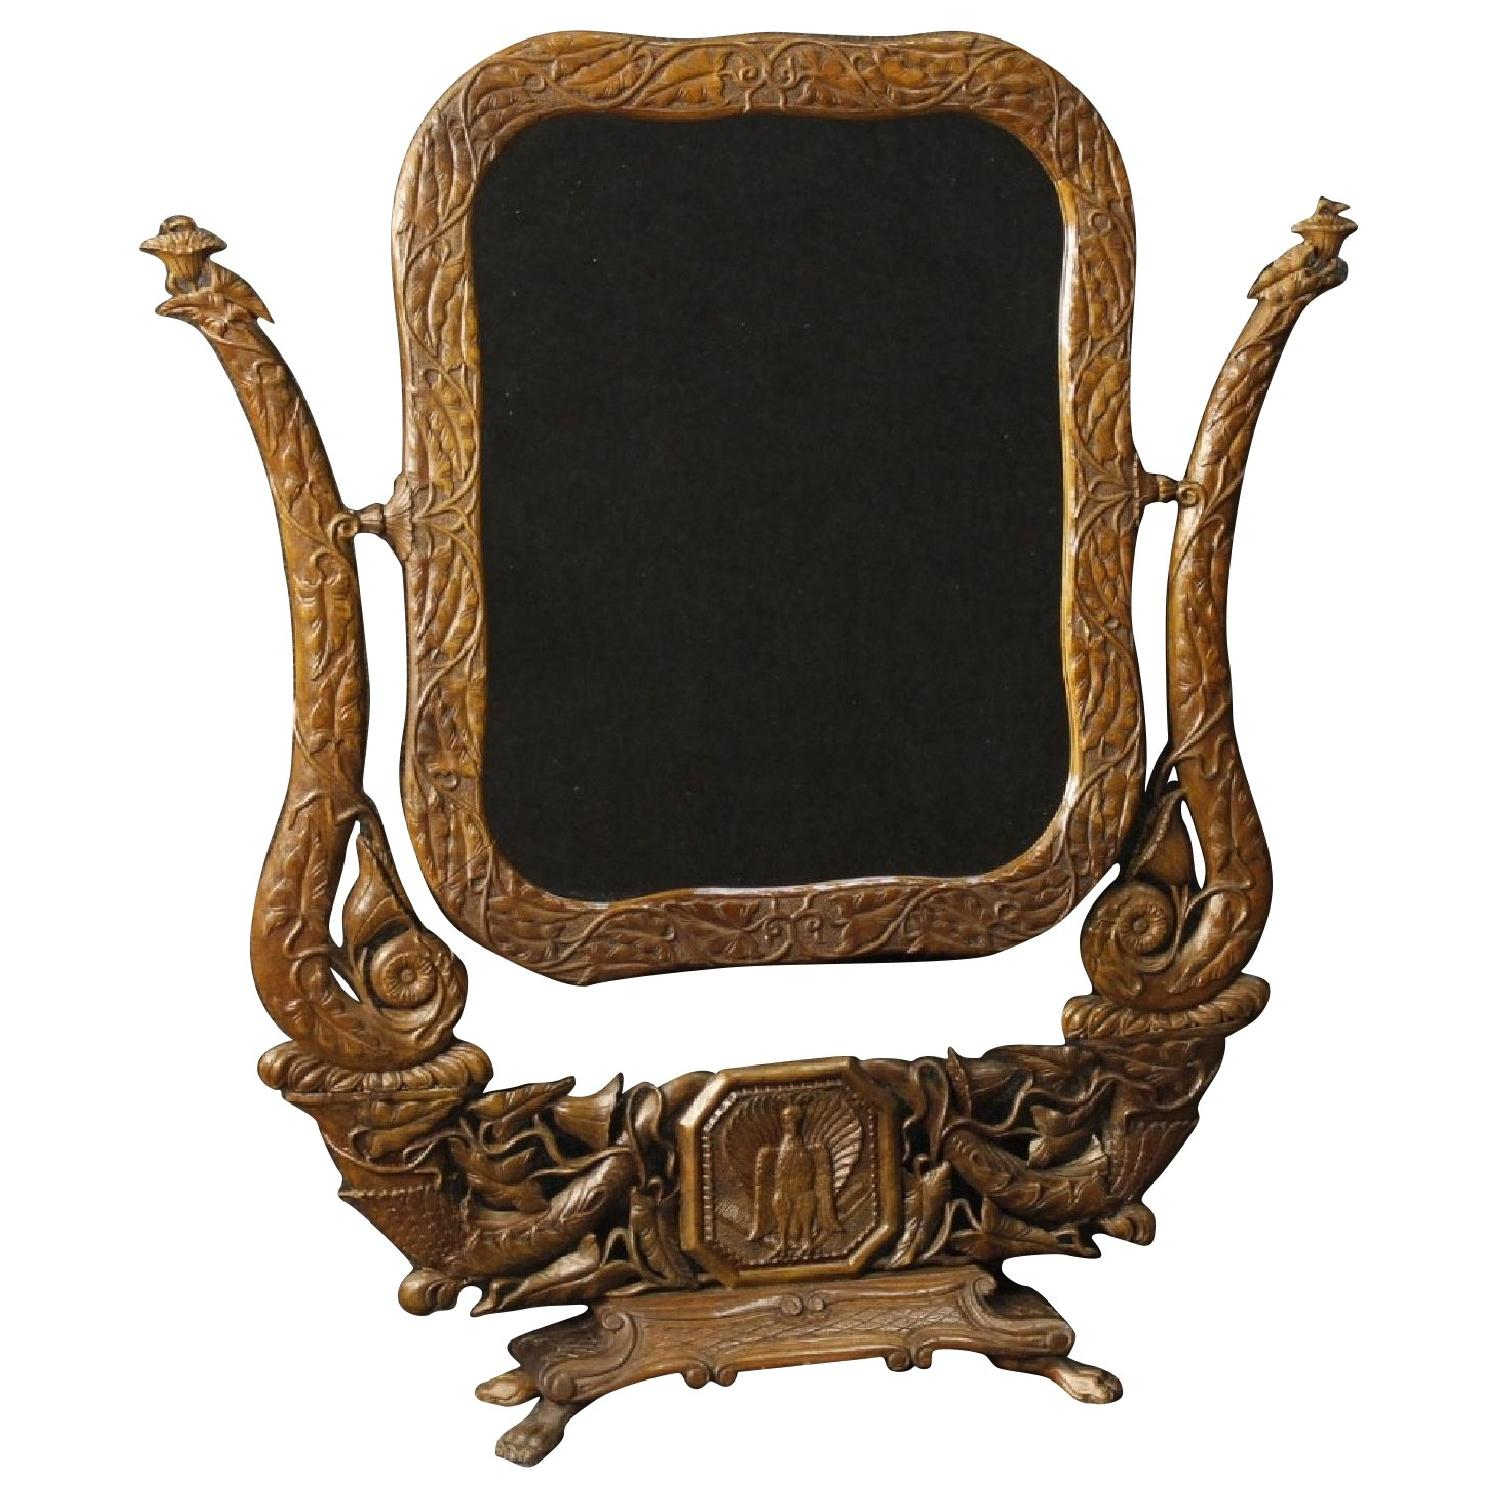 20th Century Wood French Art Nouveau Style Cheval Mirror